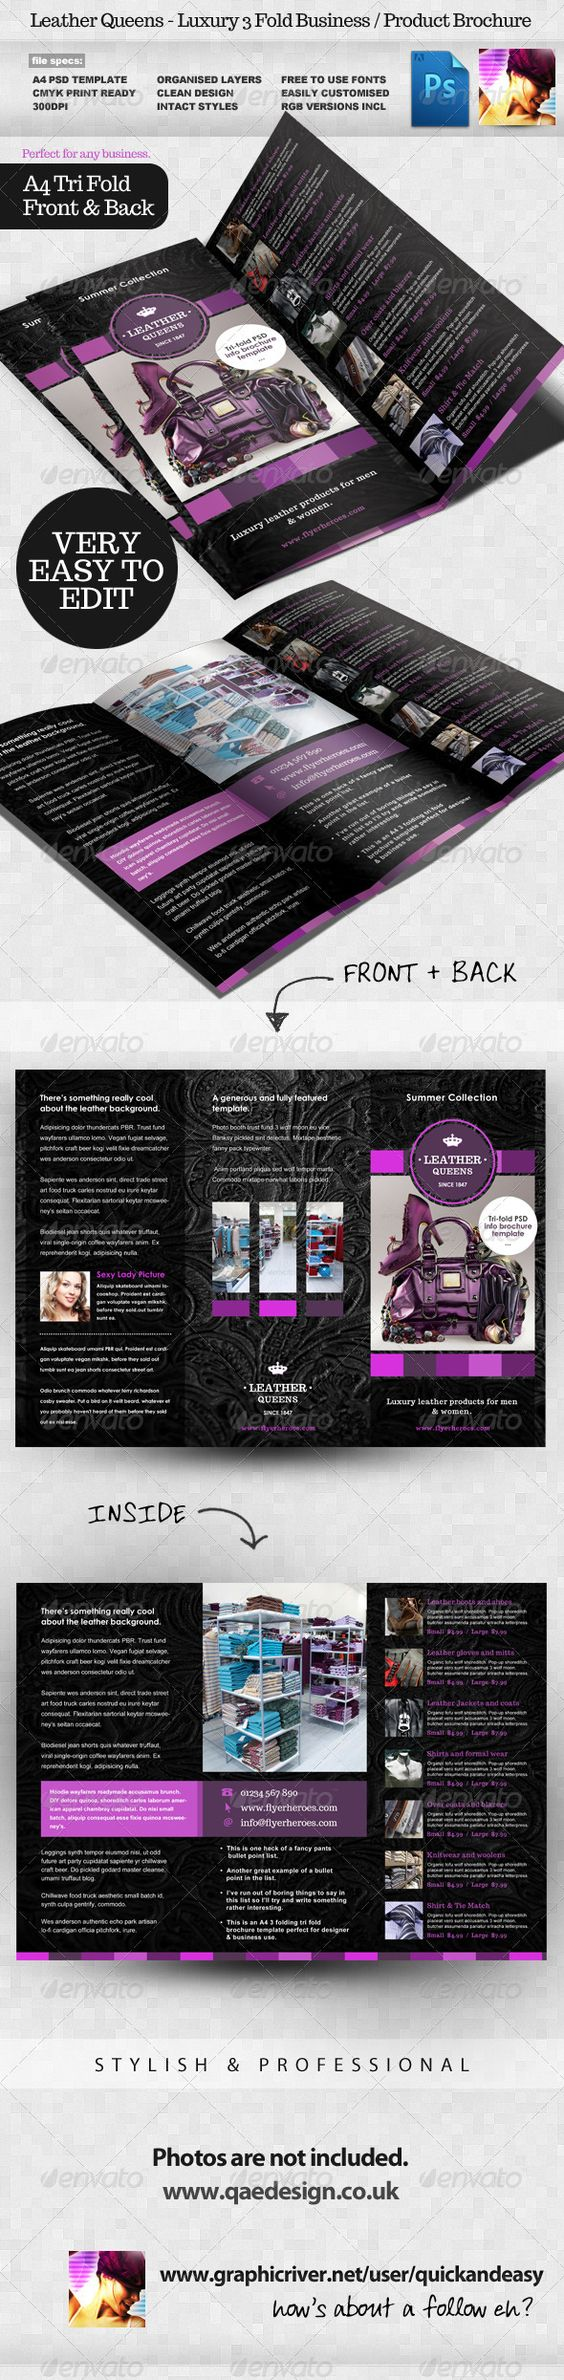 flyer template psd flyer templates and leather leather queens 3 fold product brochure template graphicriver leather queens business product 3